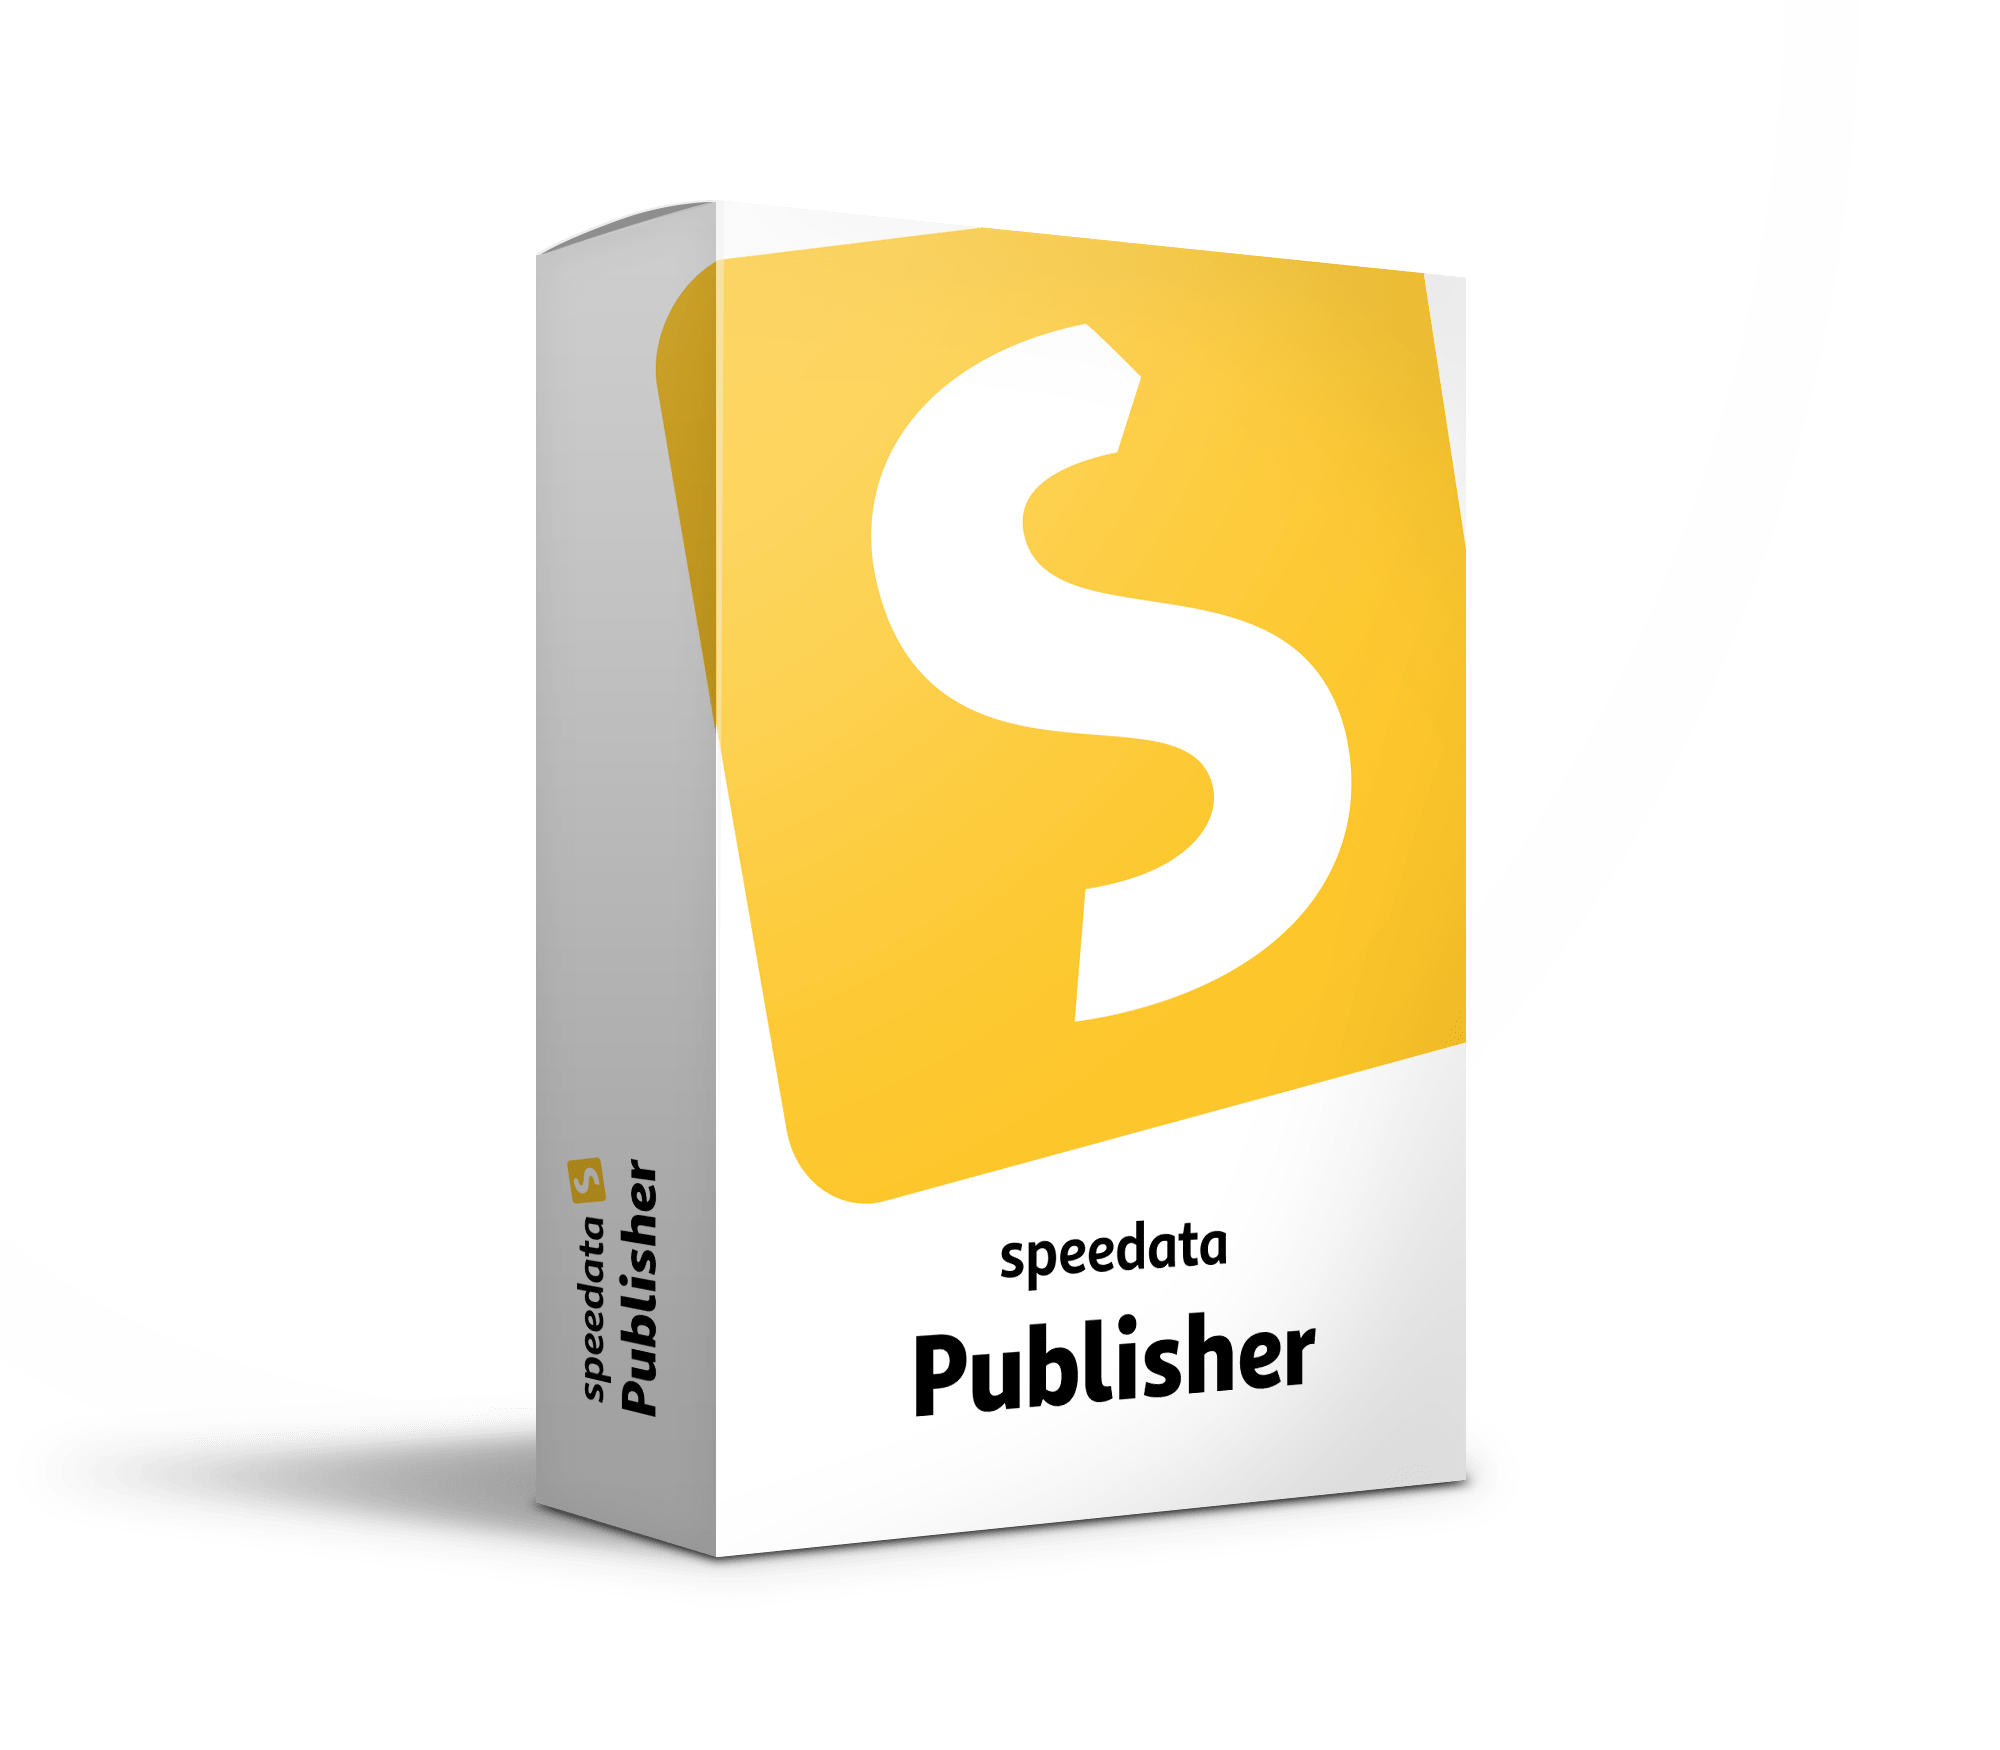 speedata Publisher